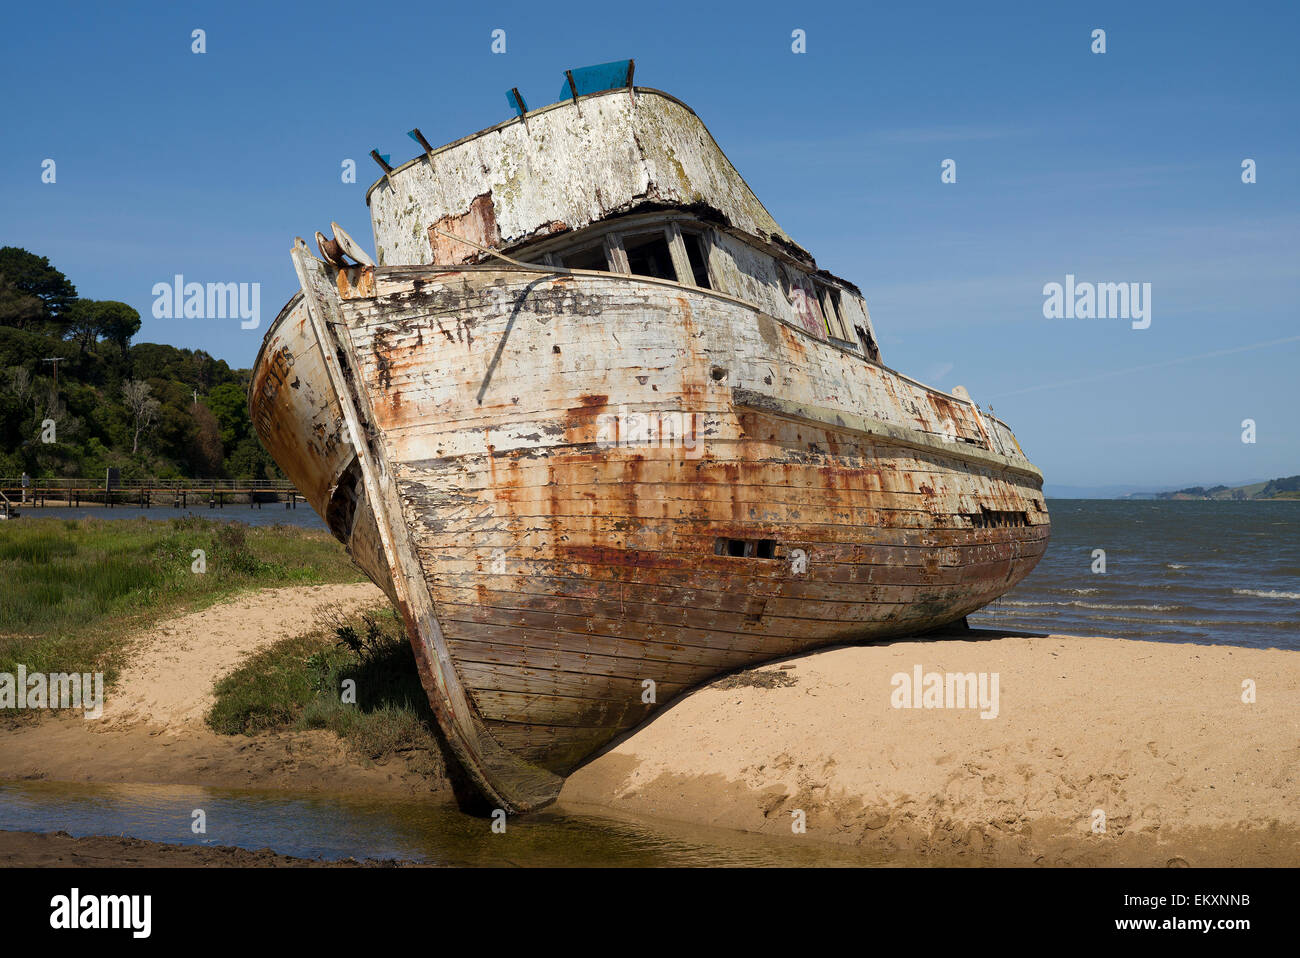 The boat Point Reyes is seen grounded on a sandbar in Tomales Bay in Inverness, California. - Stock Image